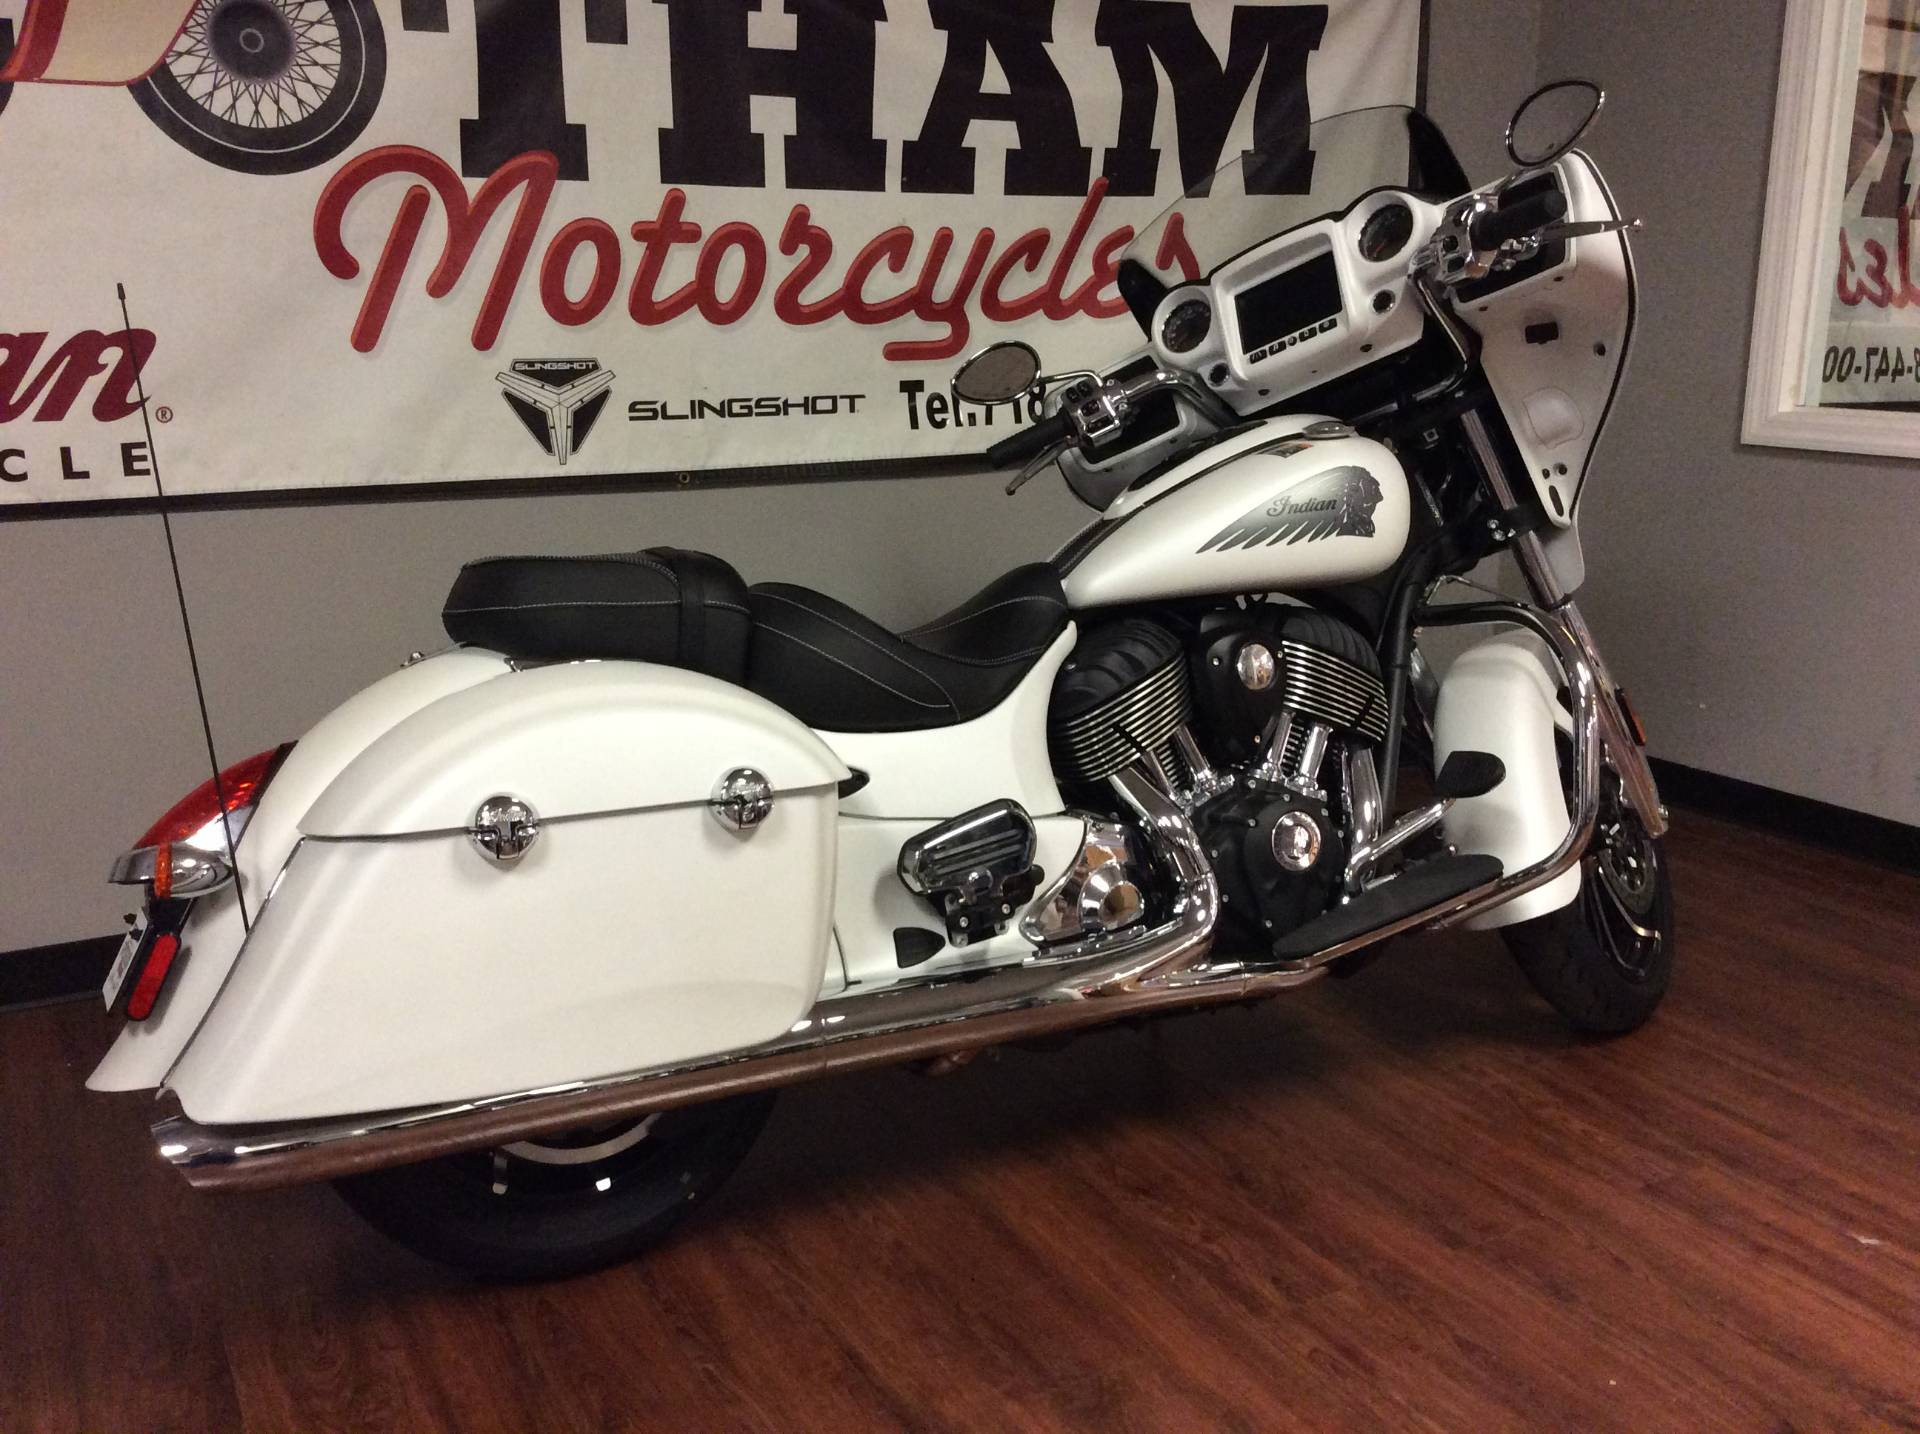 2018 Indian Chieftain Limited ABS 8